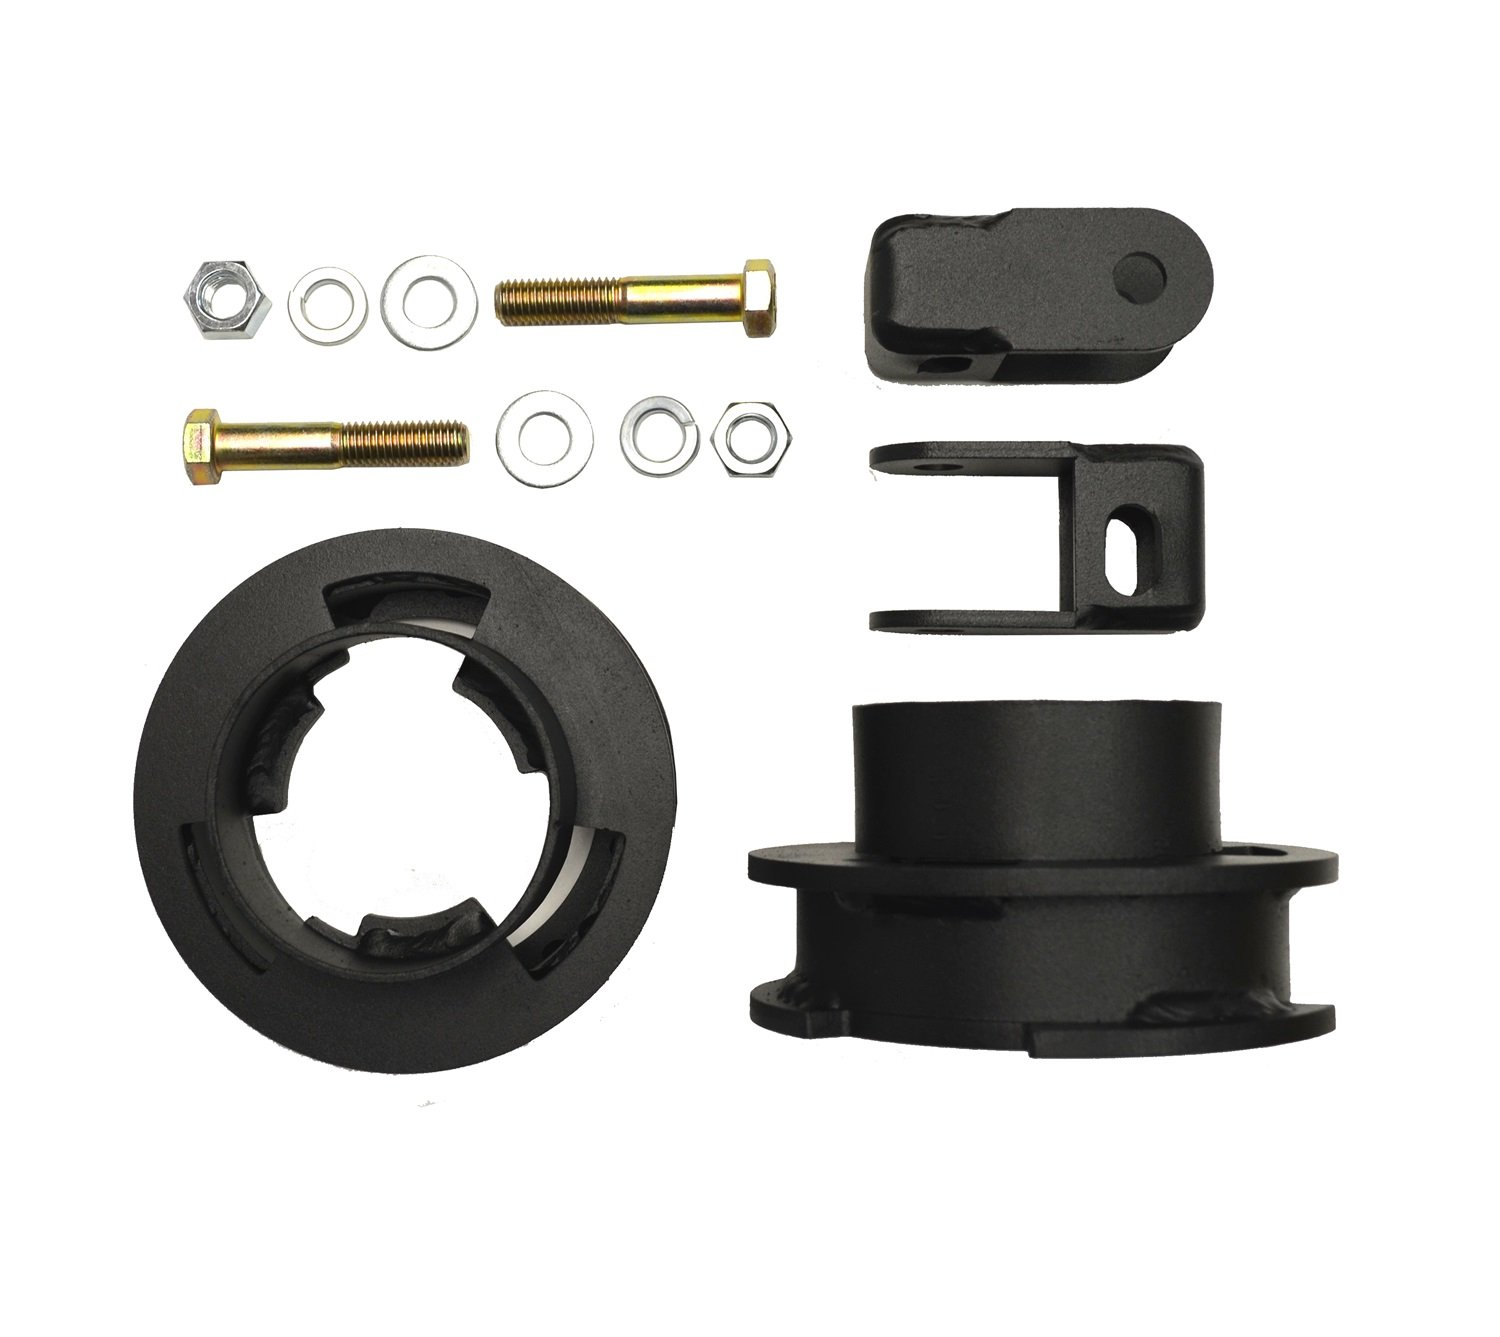 Inclusive Hardware Traxda 605030 Front Leveling Kit 1.5-Inch Lift